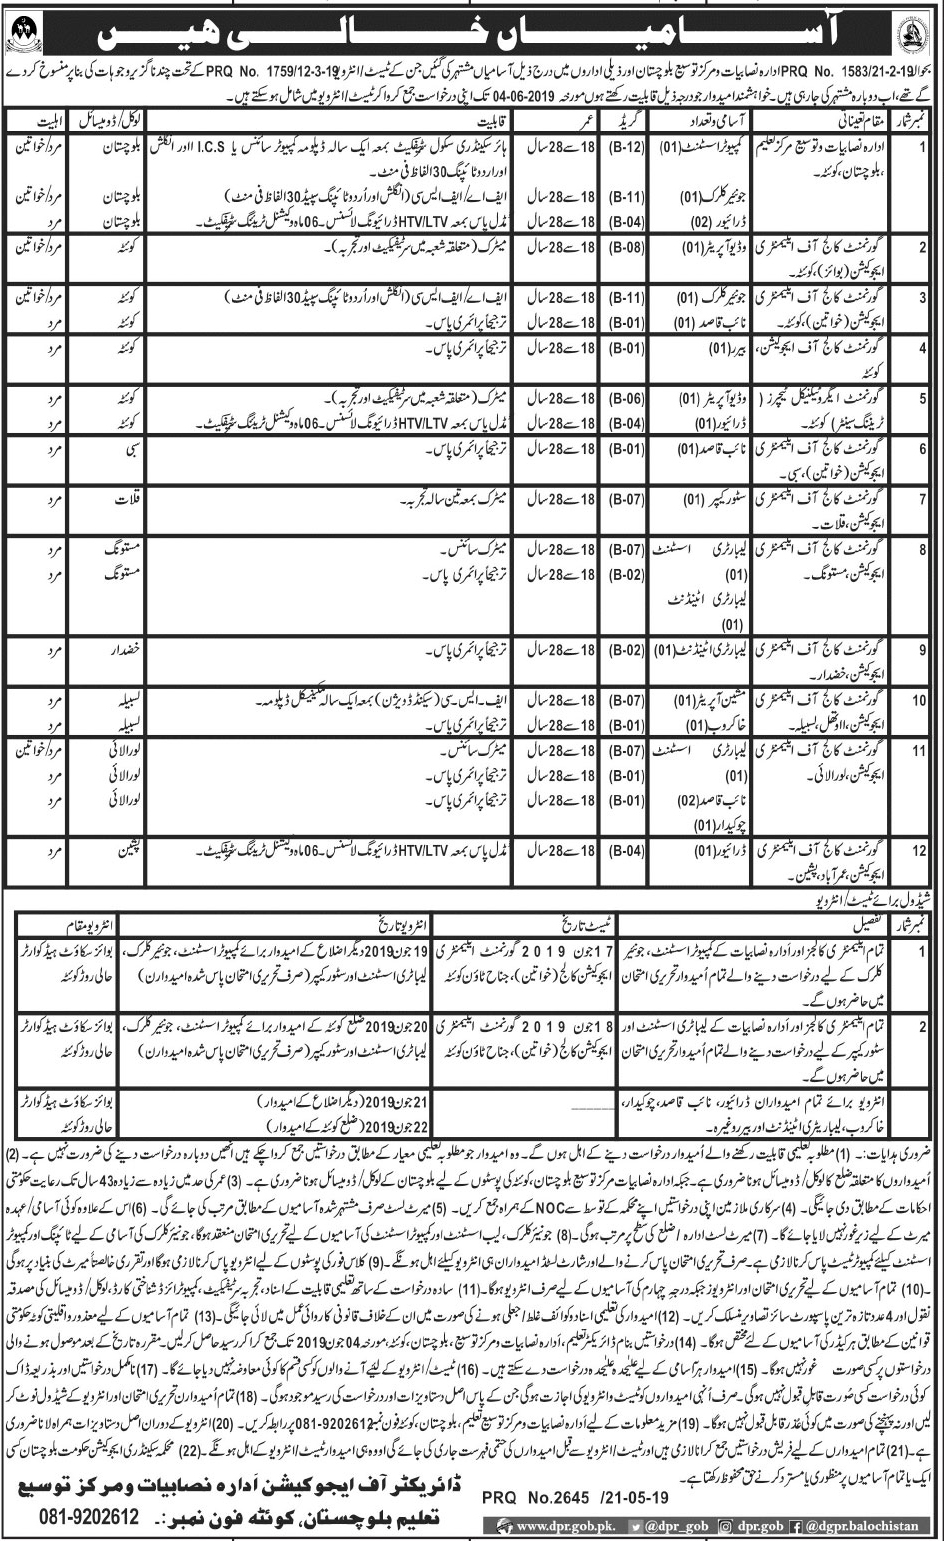 Education Department Balochistan Jobs 2019 Application form Eligibility Criteria